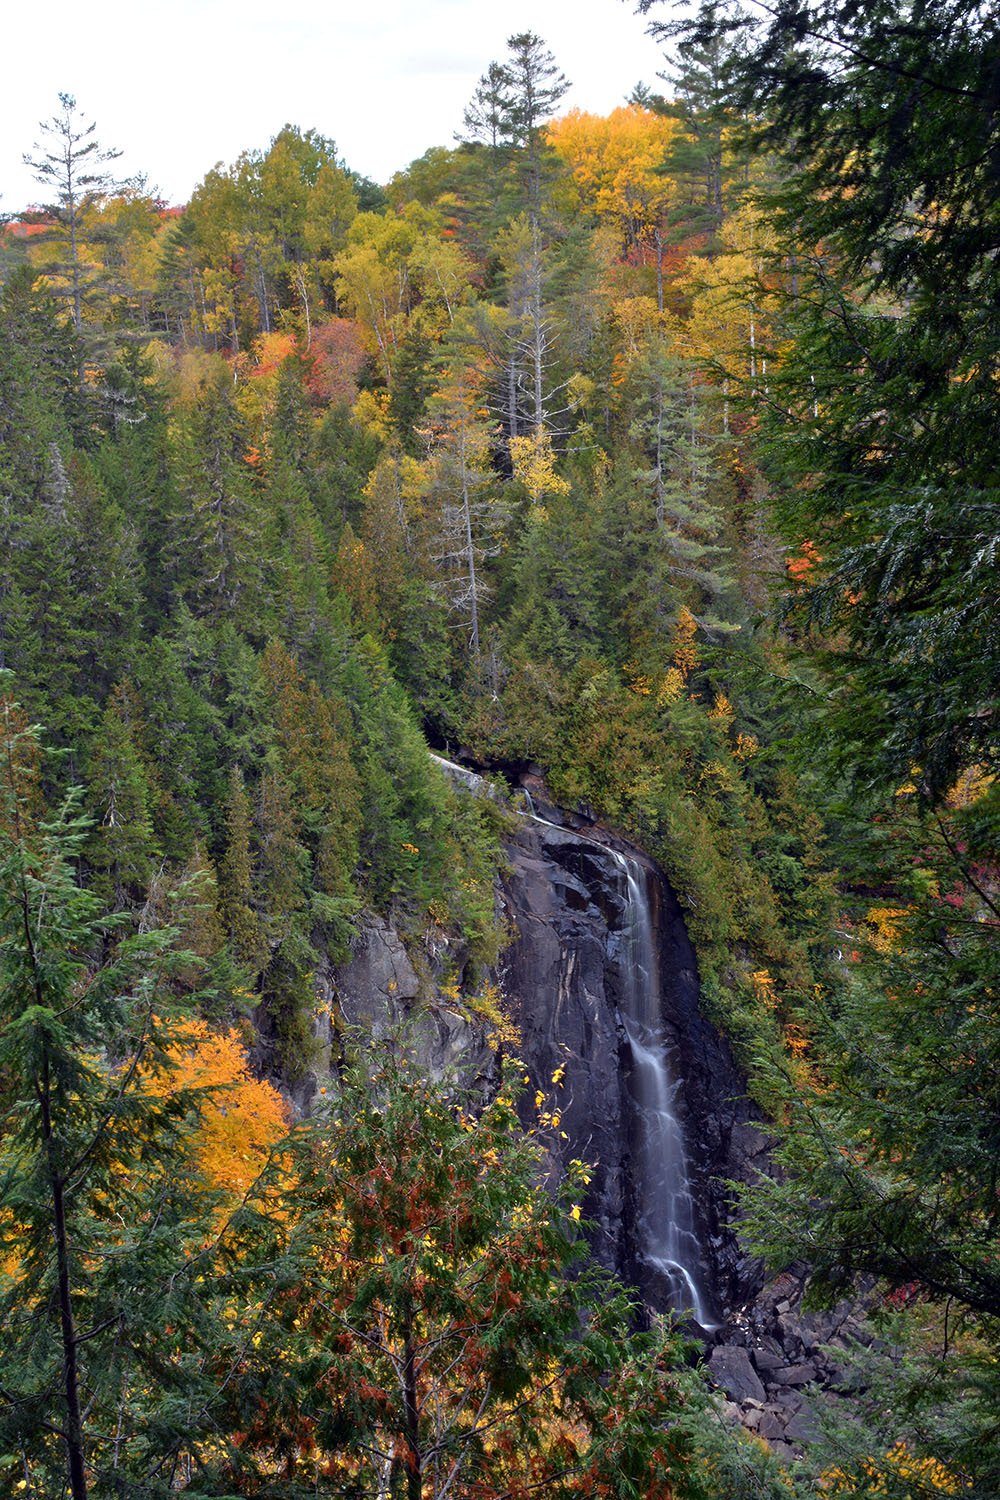 Wider view of falls from overlook_1457.jpg